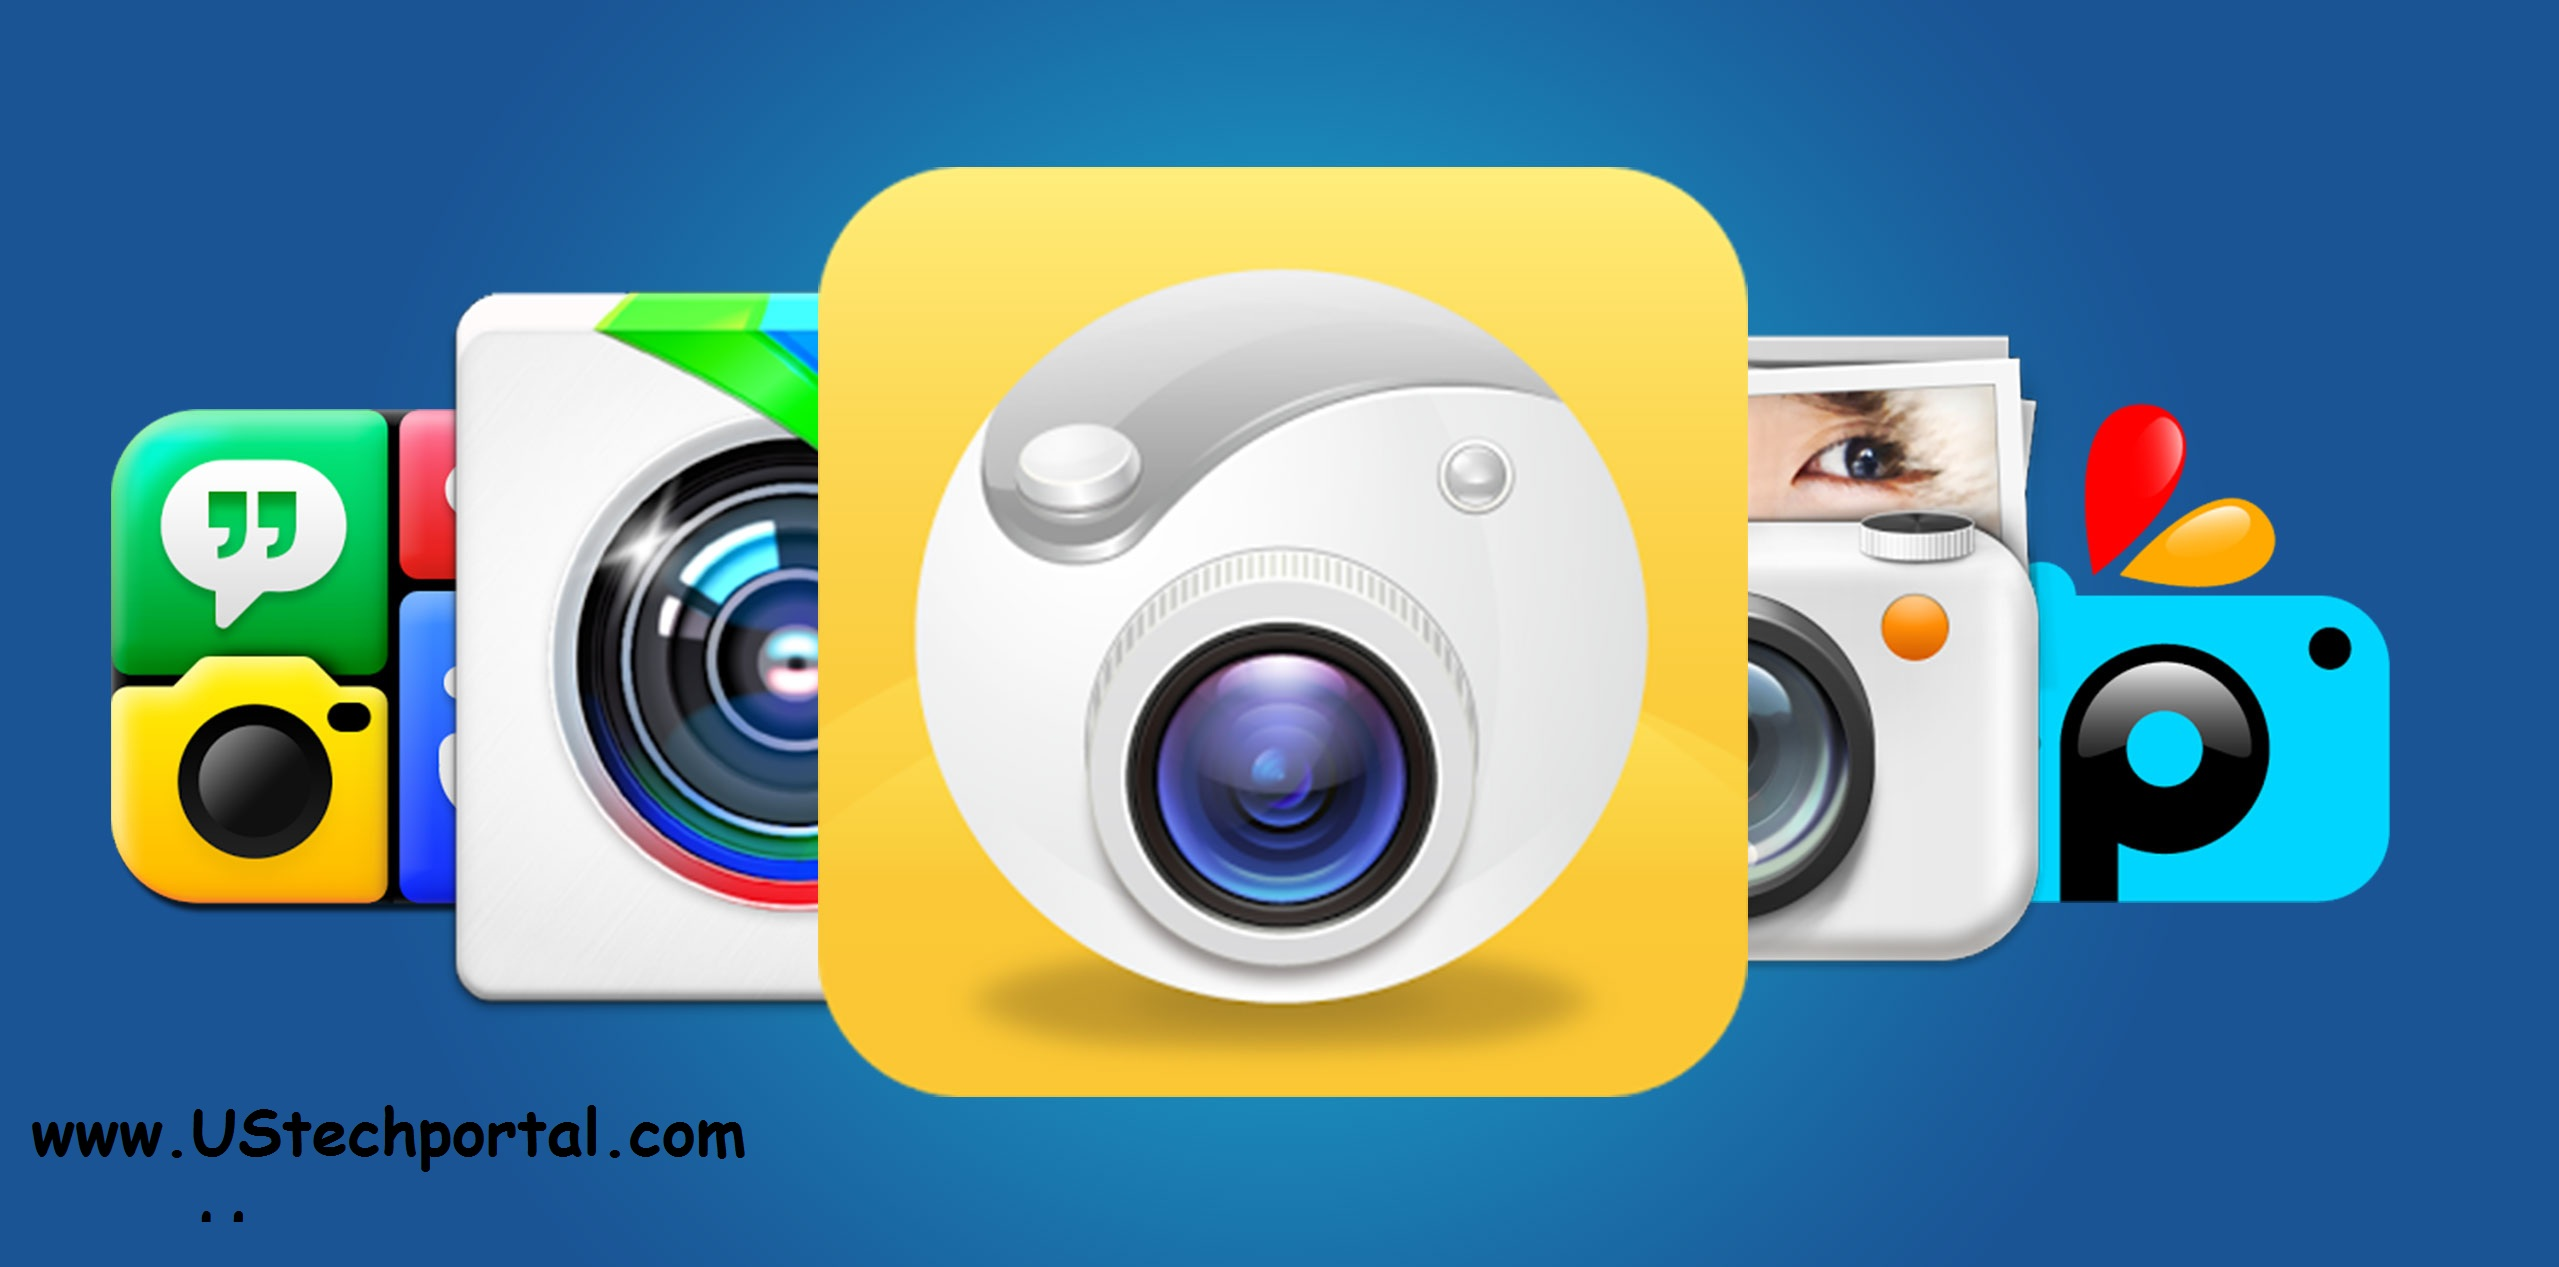 Best Proffesional Camera Apps for Android 5.0(kitkat) and Android 6.0(Marshmallow) Smartphones